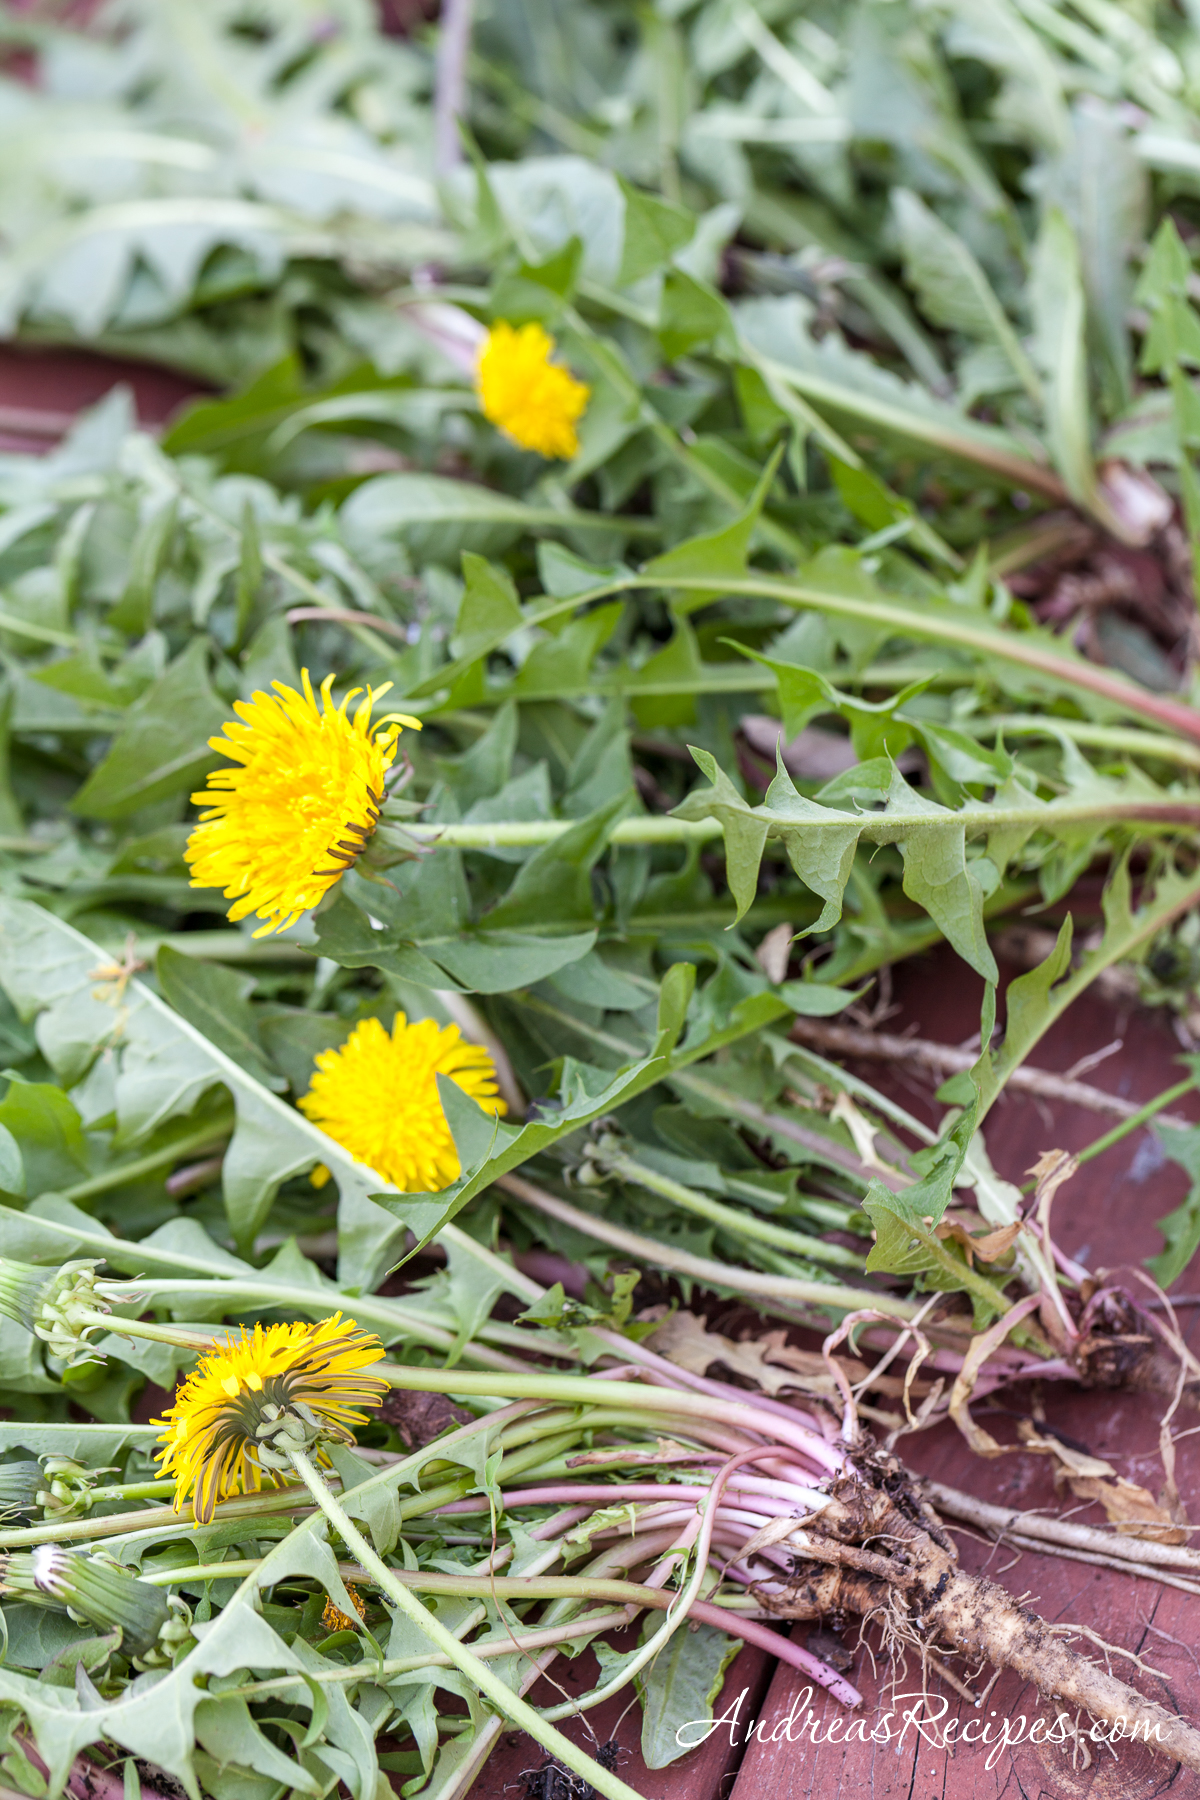 Harvested dandelions with roots - Andrea Meyers